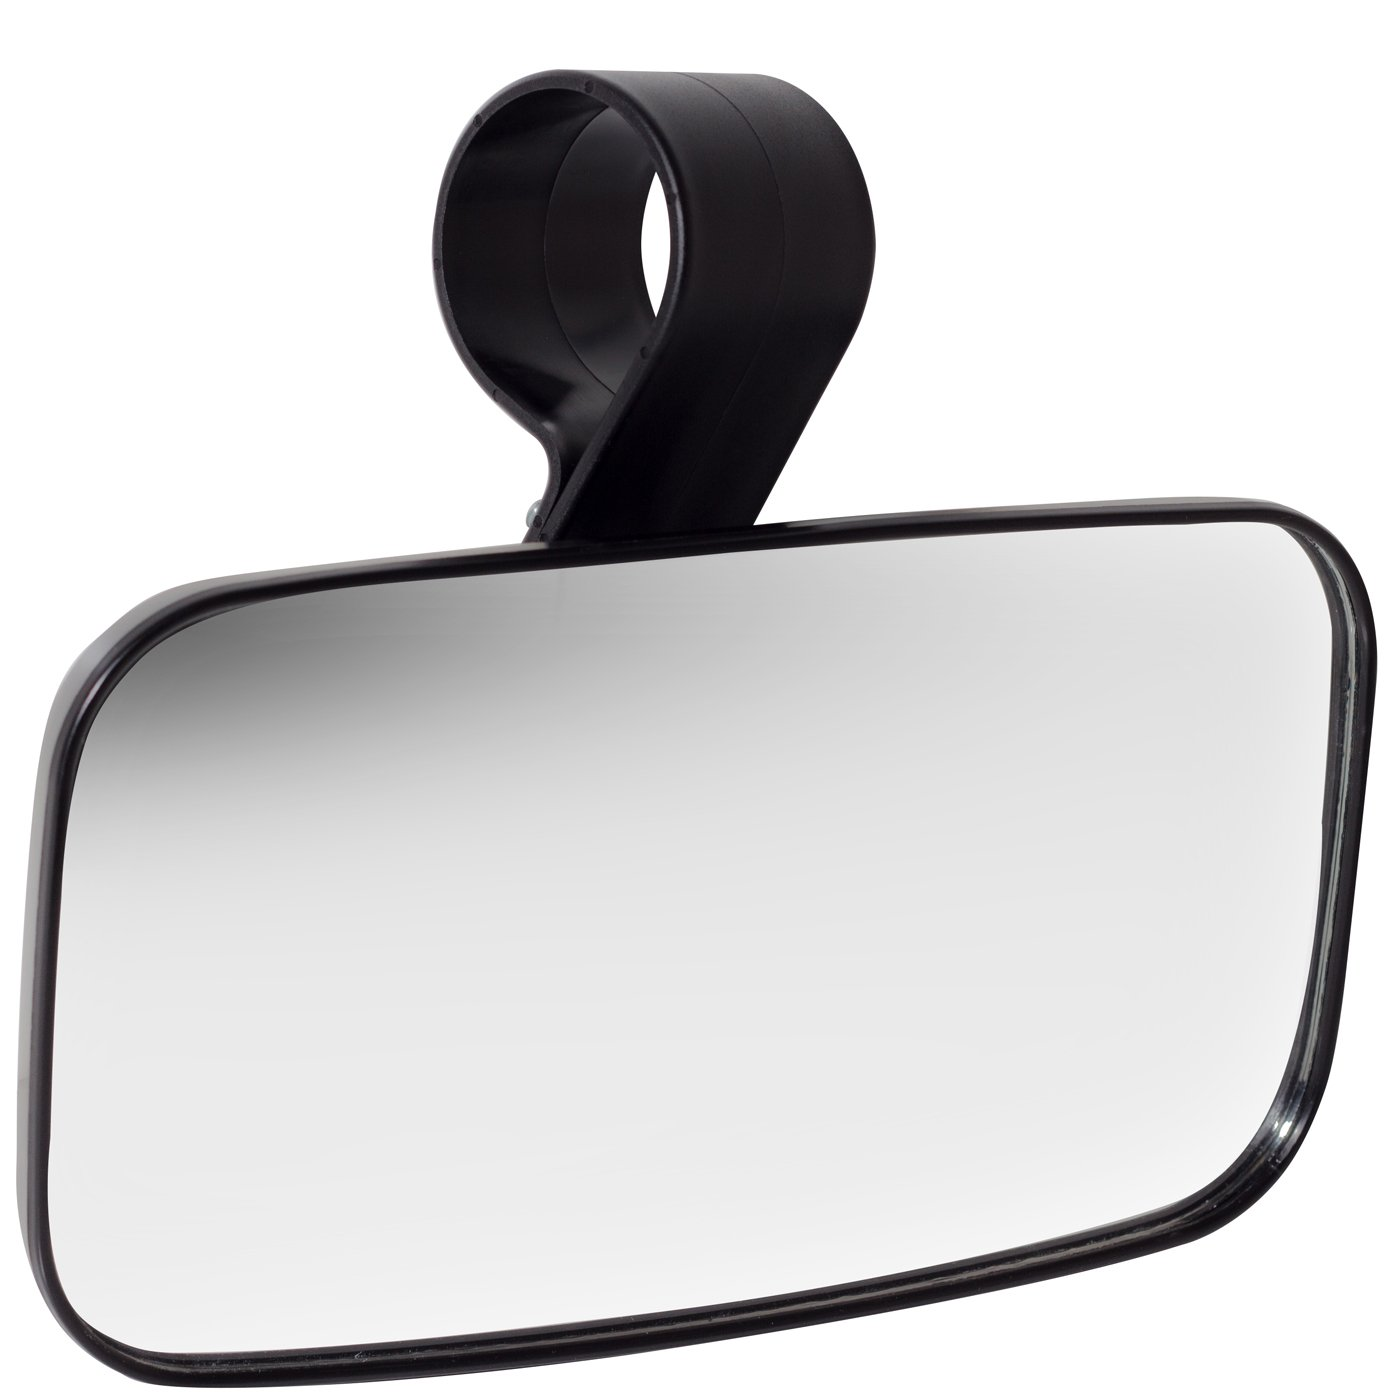 OxGord UTV Clear Rear View Center Mirror - High Impact ABS Housing with Shatter-Proof Tempered Glass Mirrors